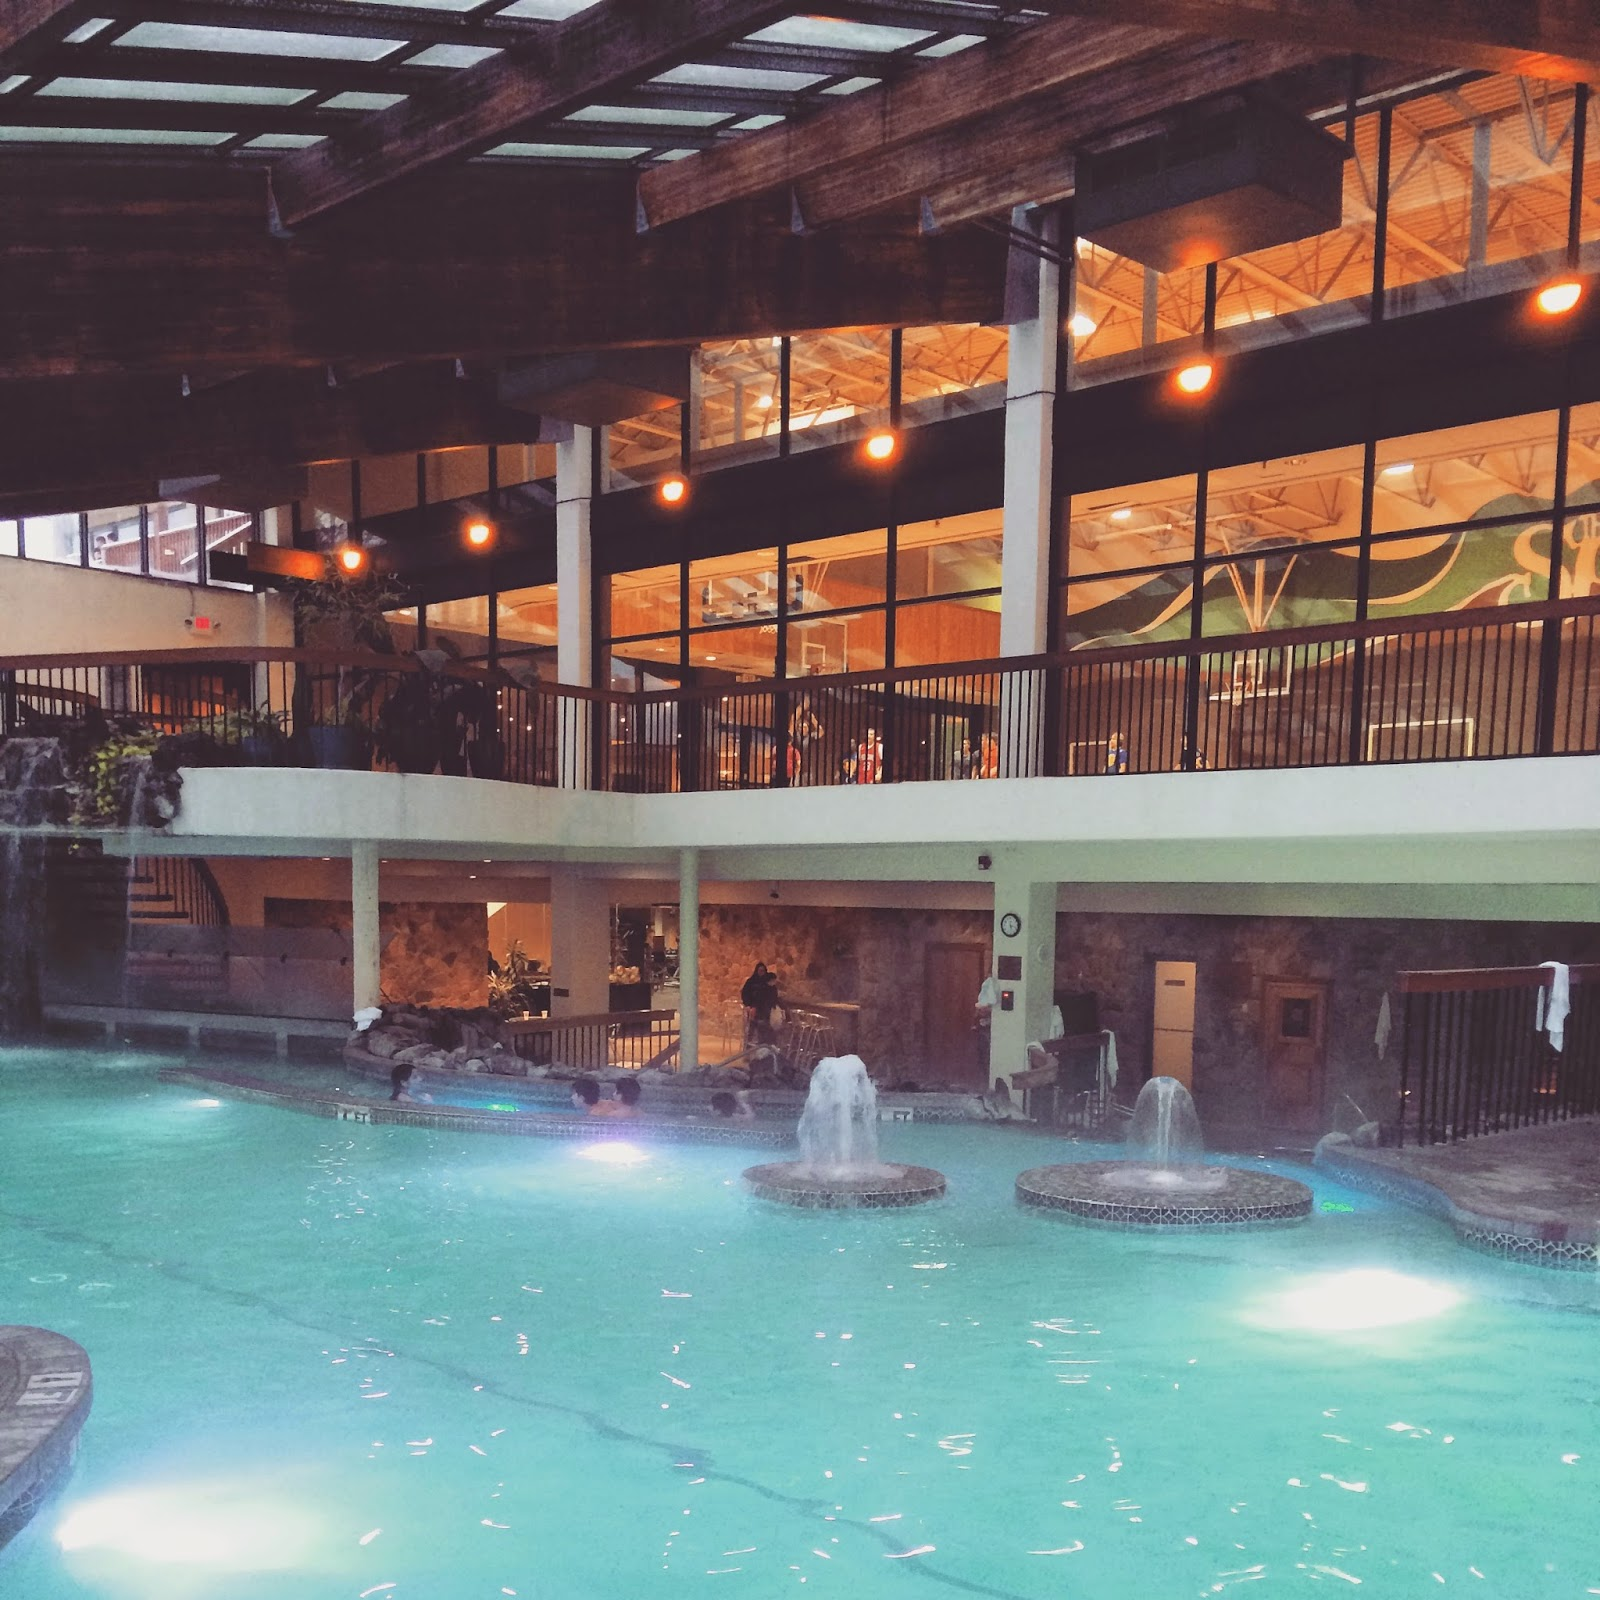 Grand Cascades Lodge Is A Bit Fancier No Basketball Tennis Or Arcade Room And It Has More Dining Options Biosphere Pool With Slide Which One